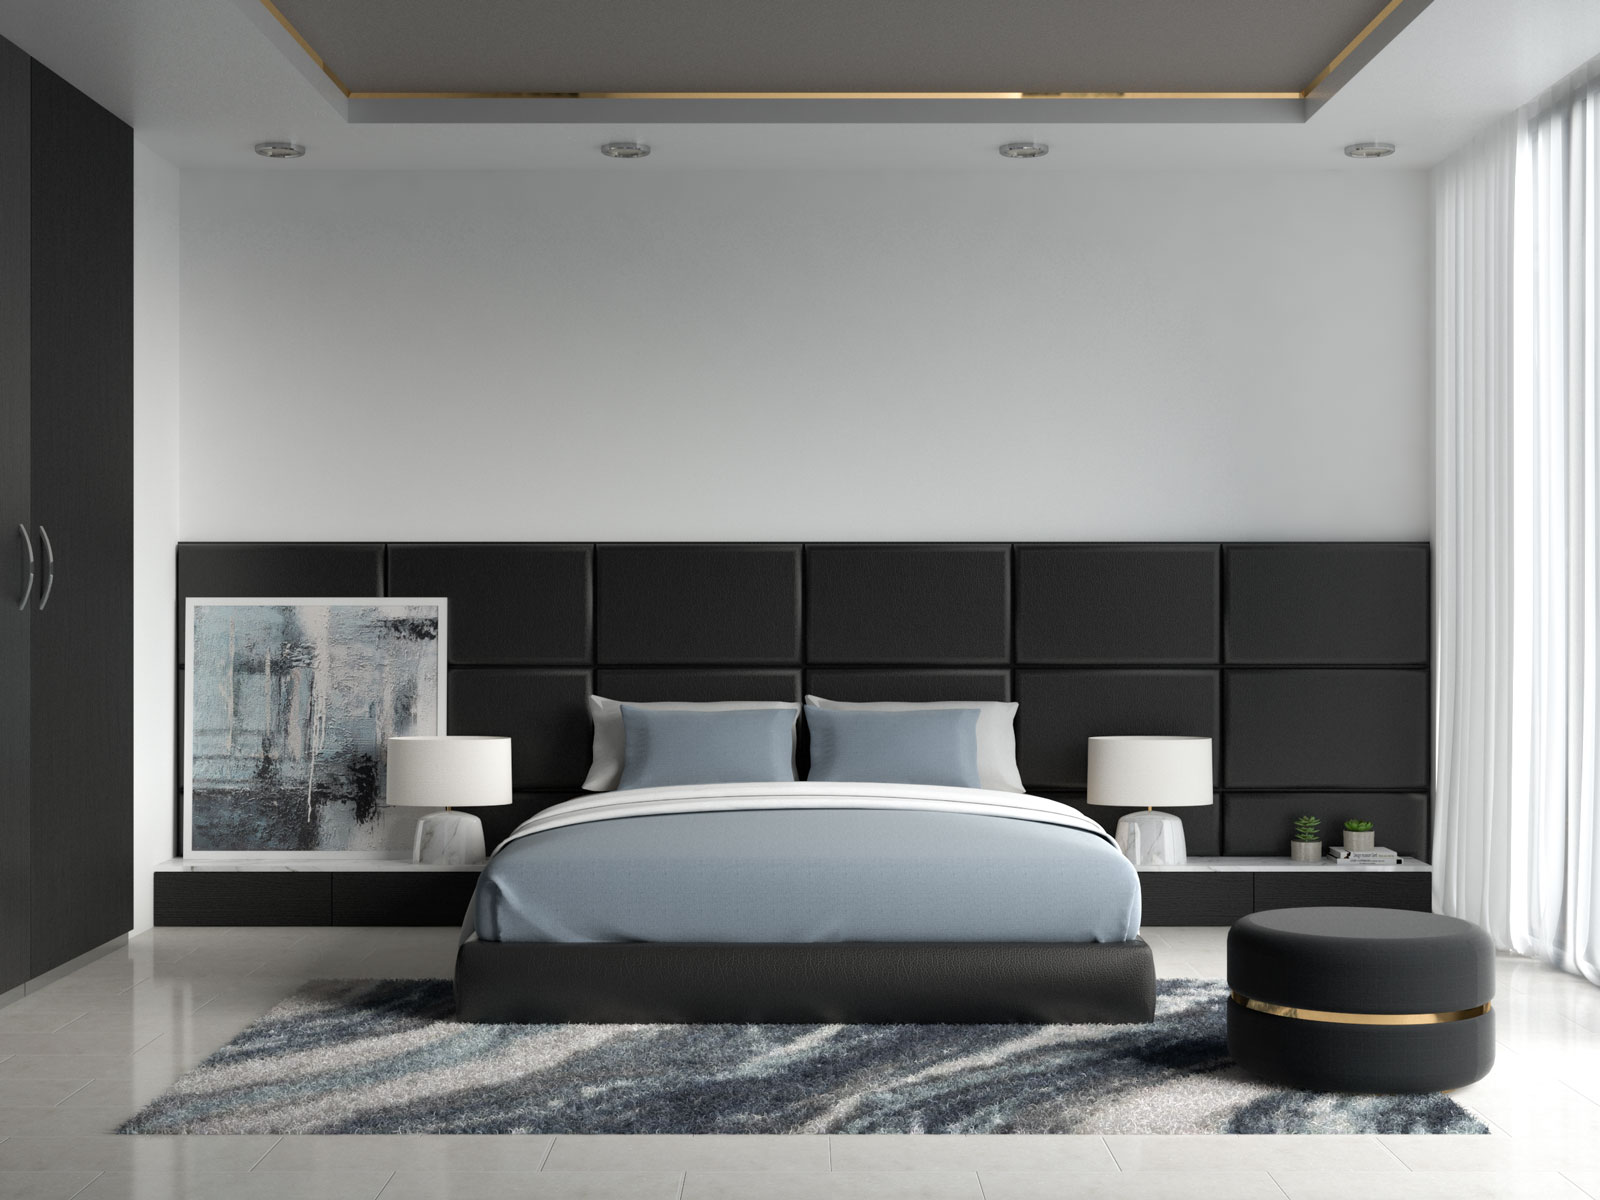 Dusty blue bedding with black bedroom furniture